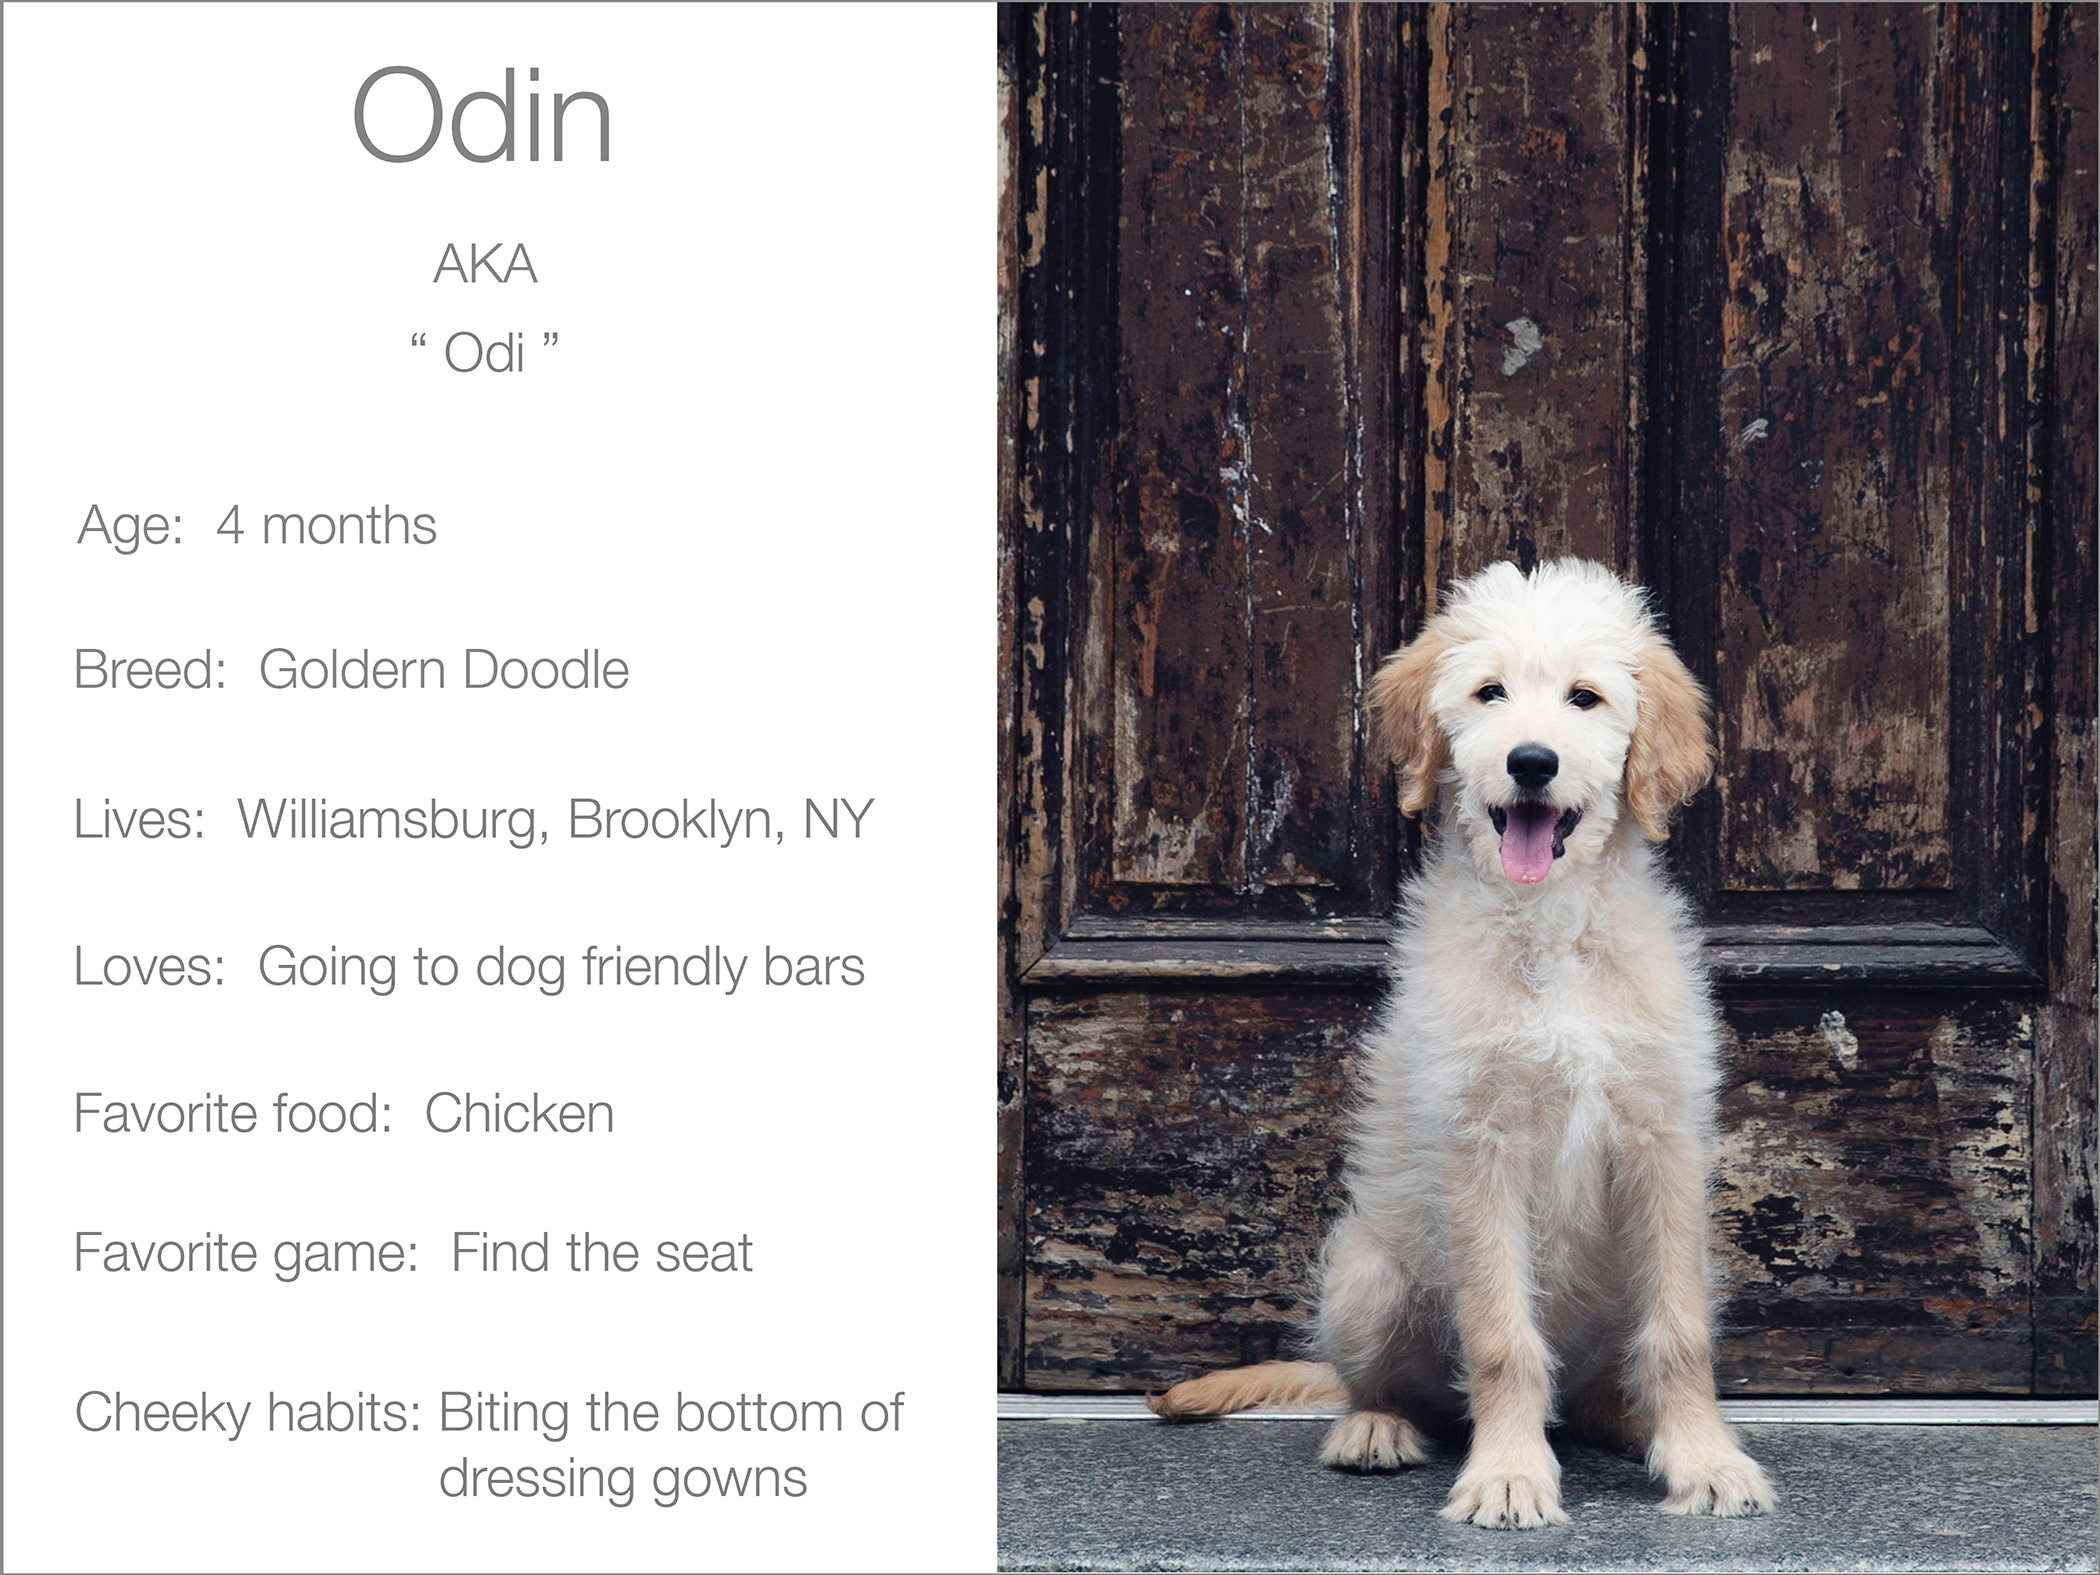 Odin profile dogs_and_the_city kristie_lee_photographer Charlie.jpg